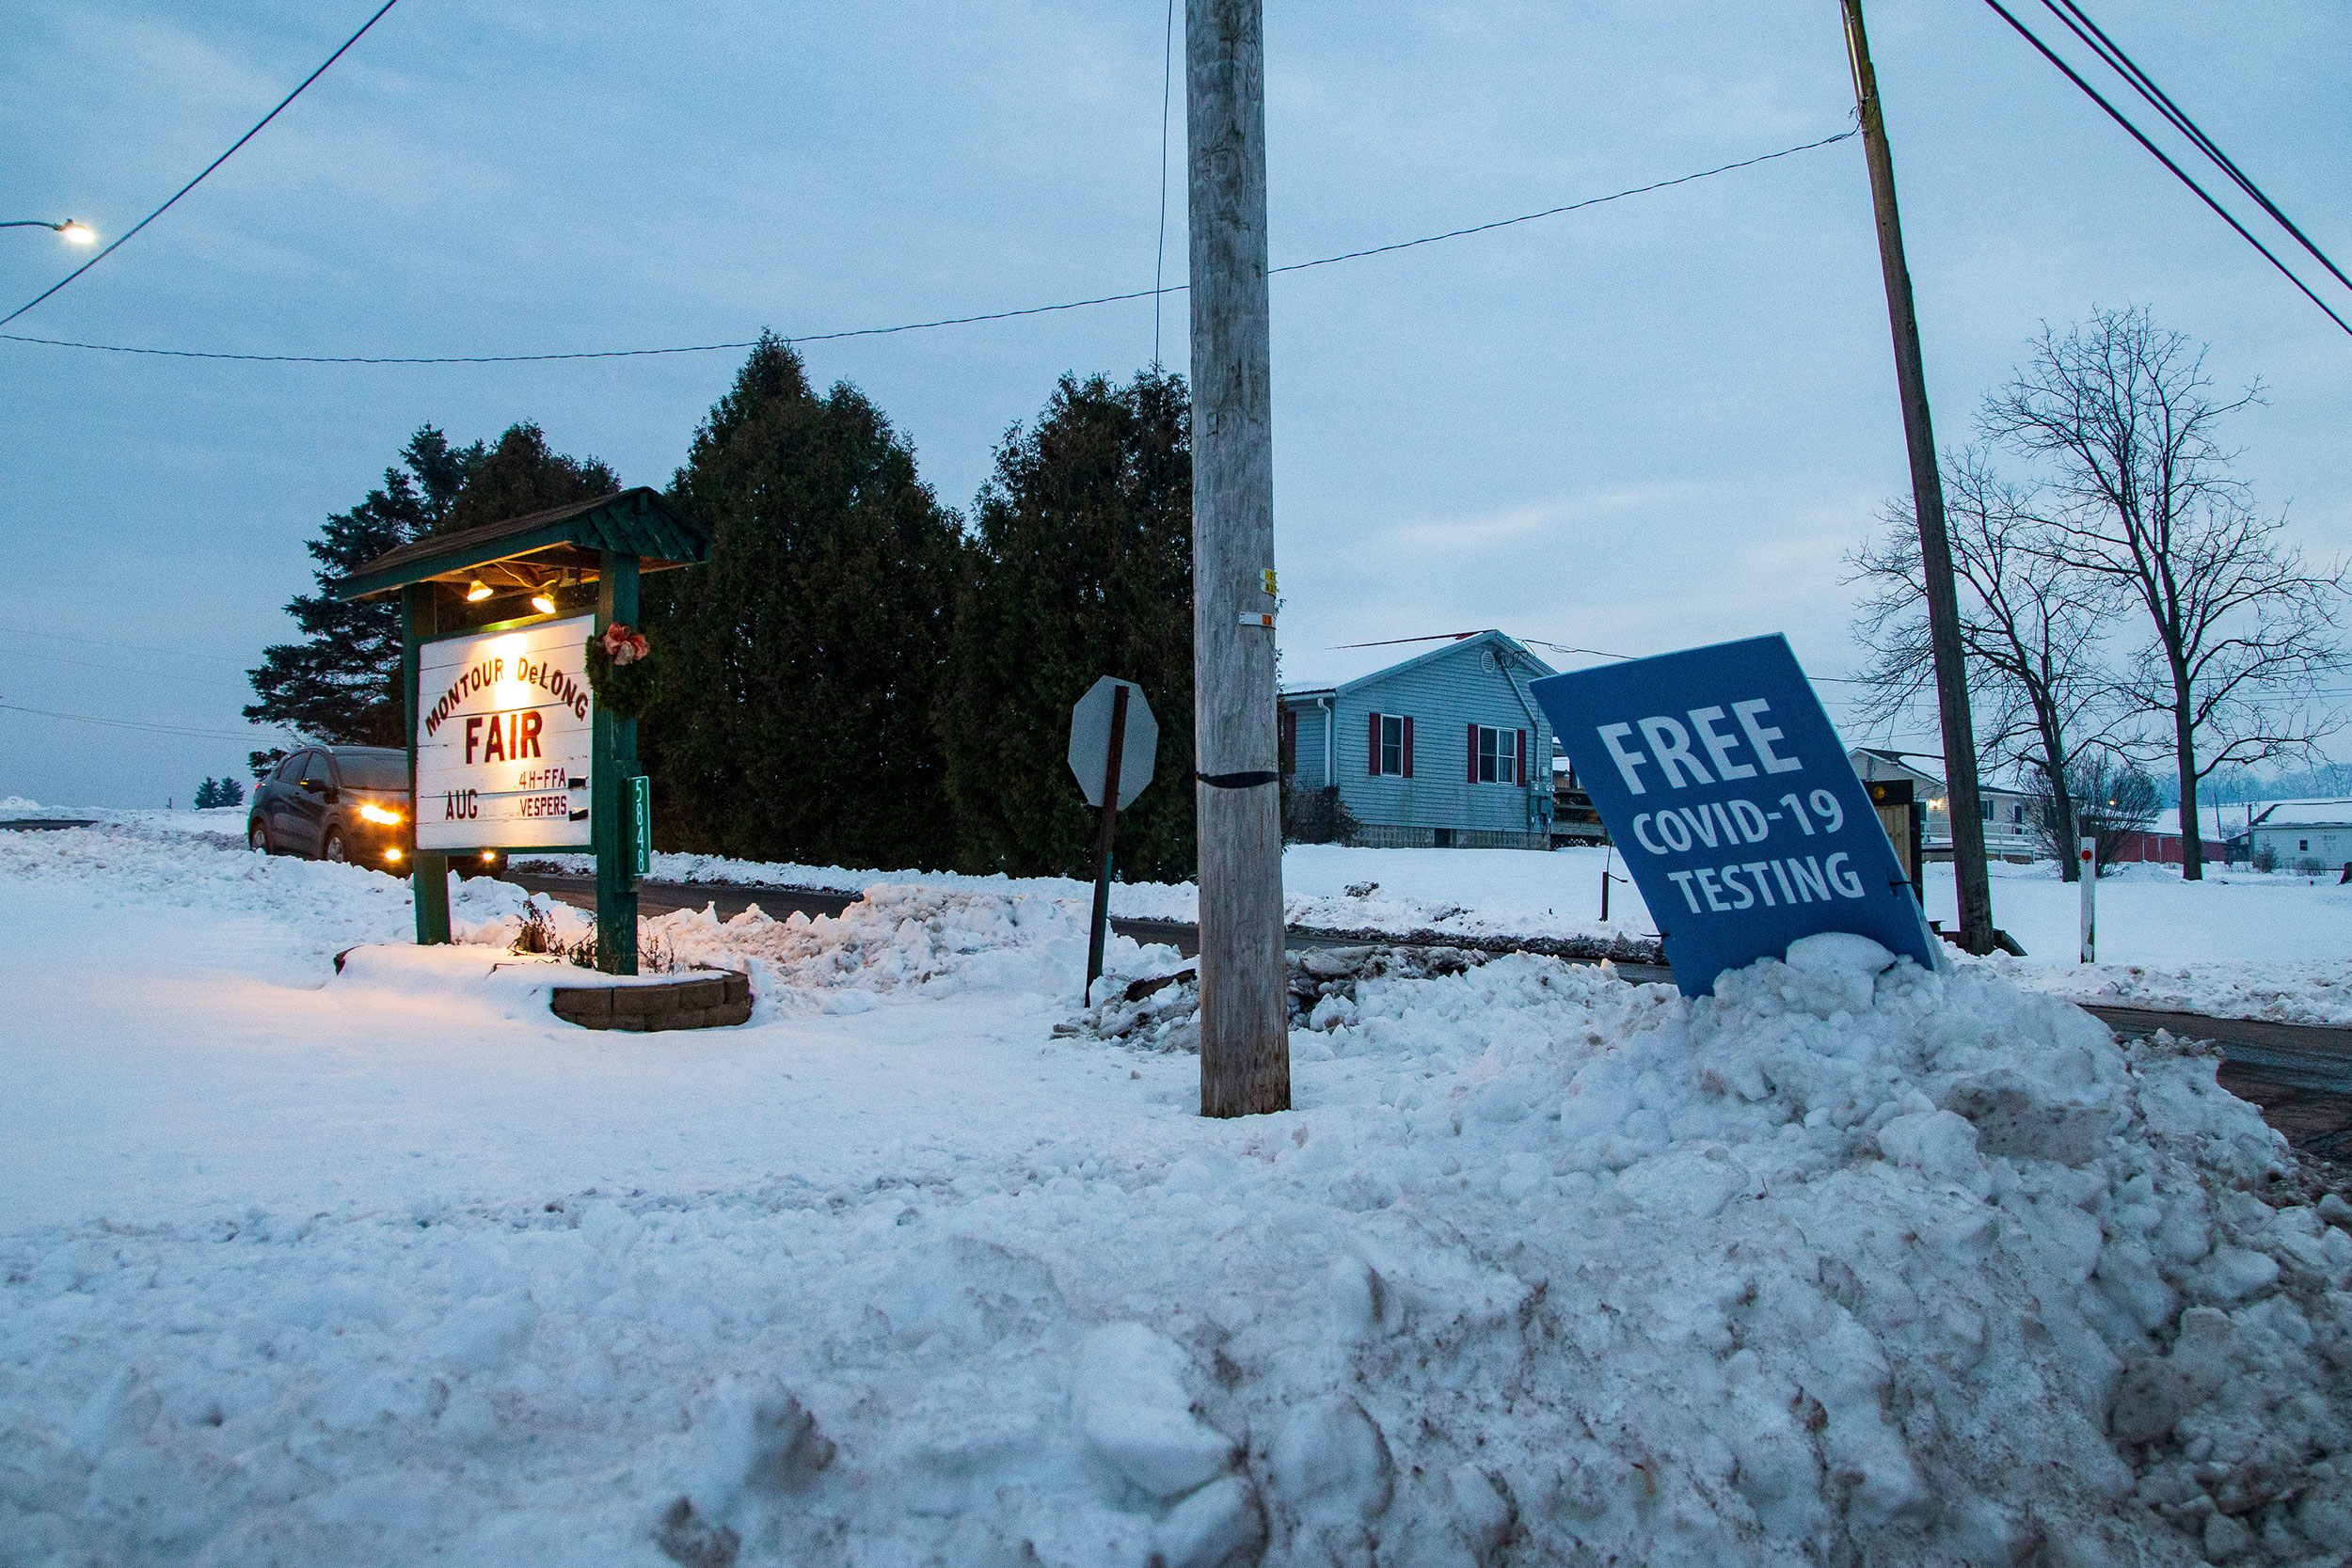 A sign for free coronavirus testing is propped in the snow at the Montour-Delong Community Fairgrounds near Danville, Pennsylvania, on December 21.